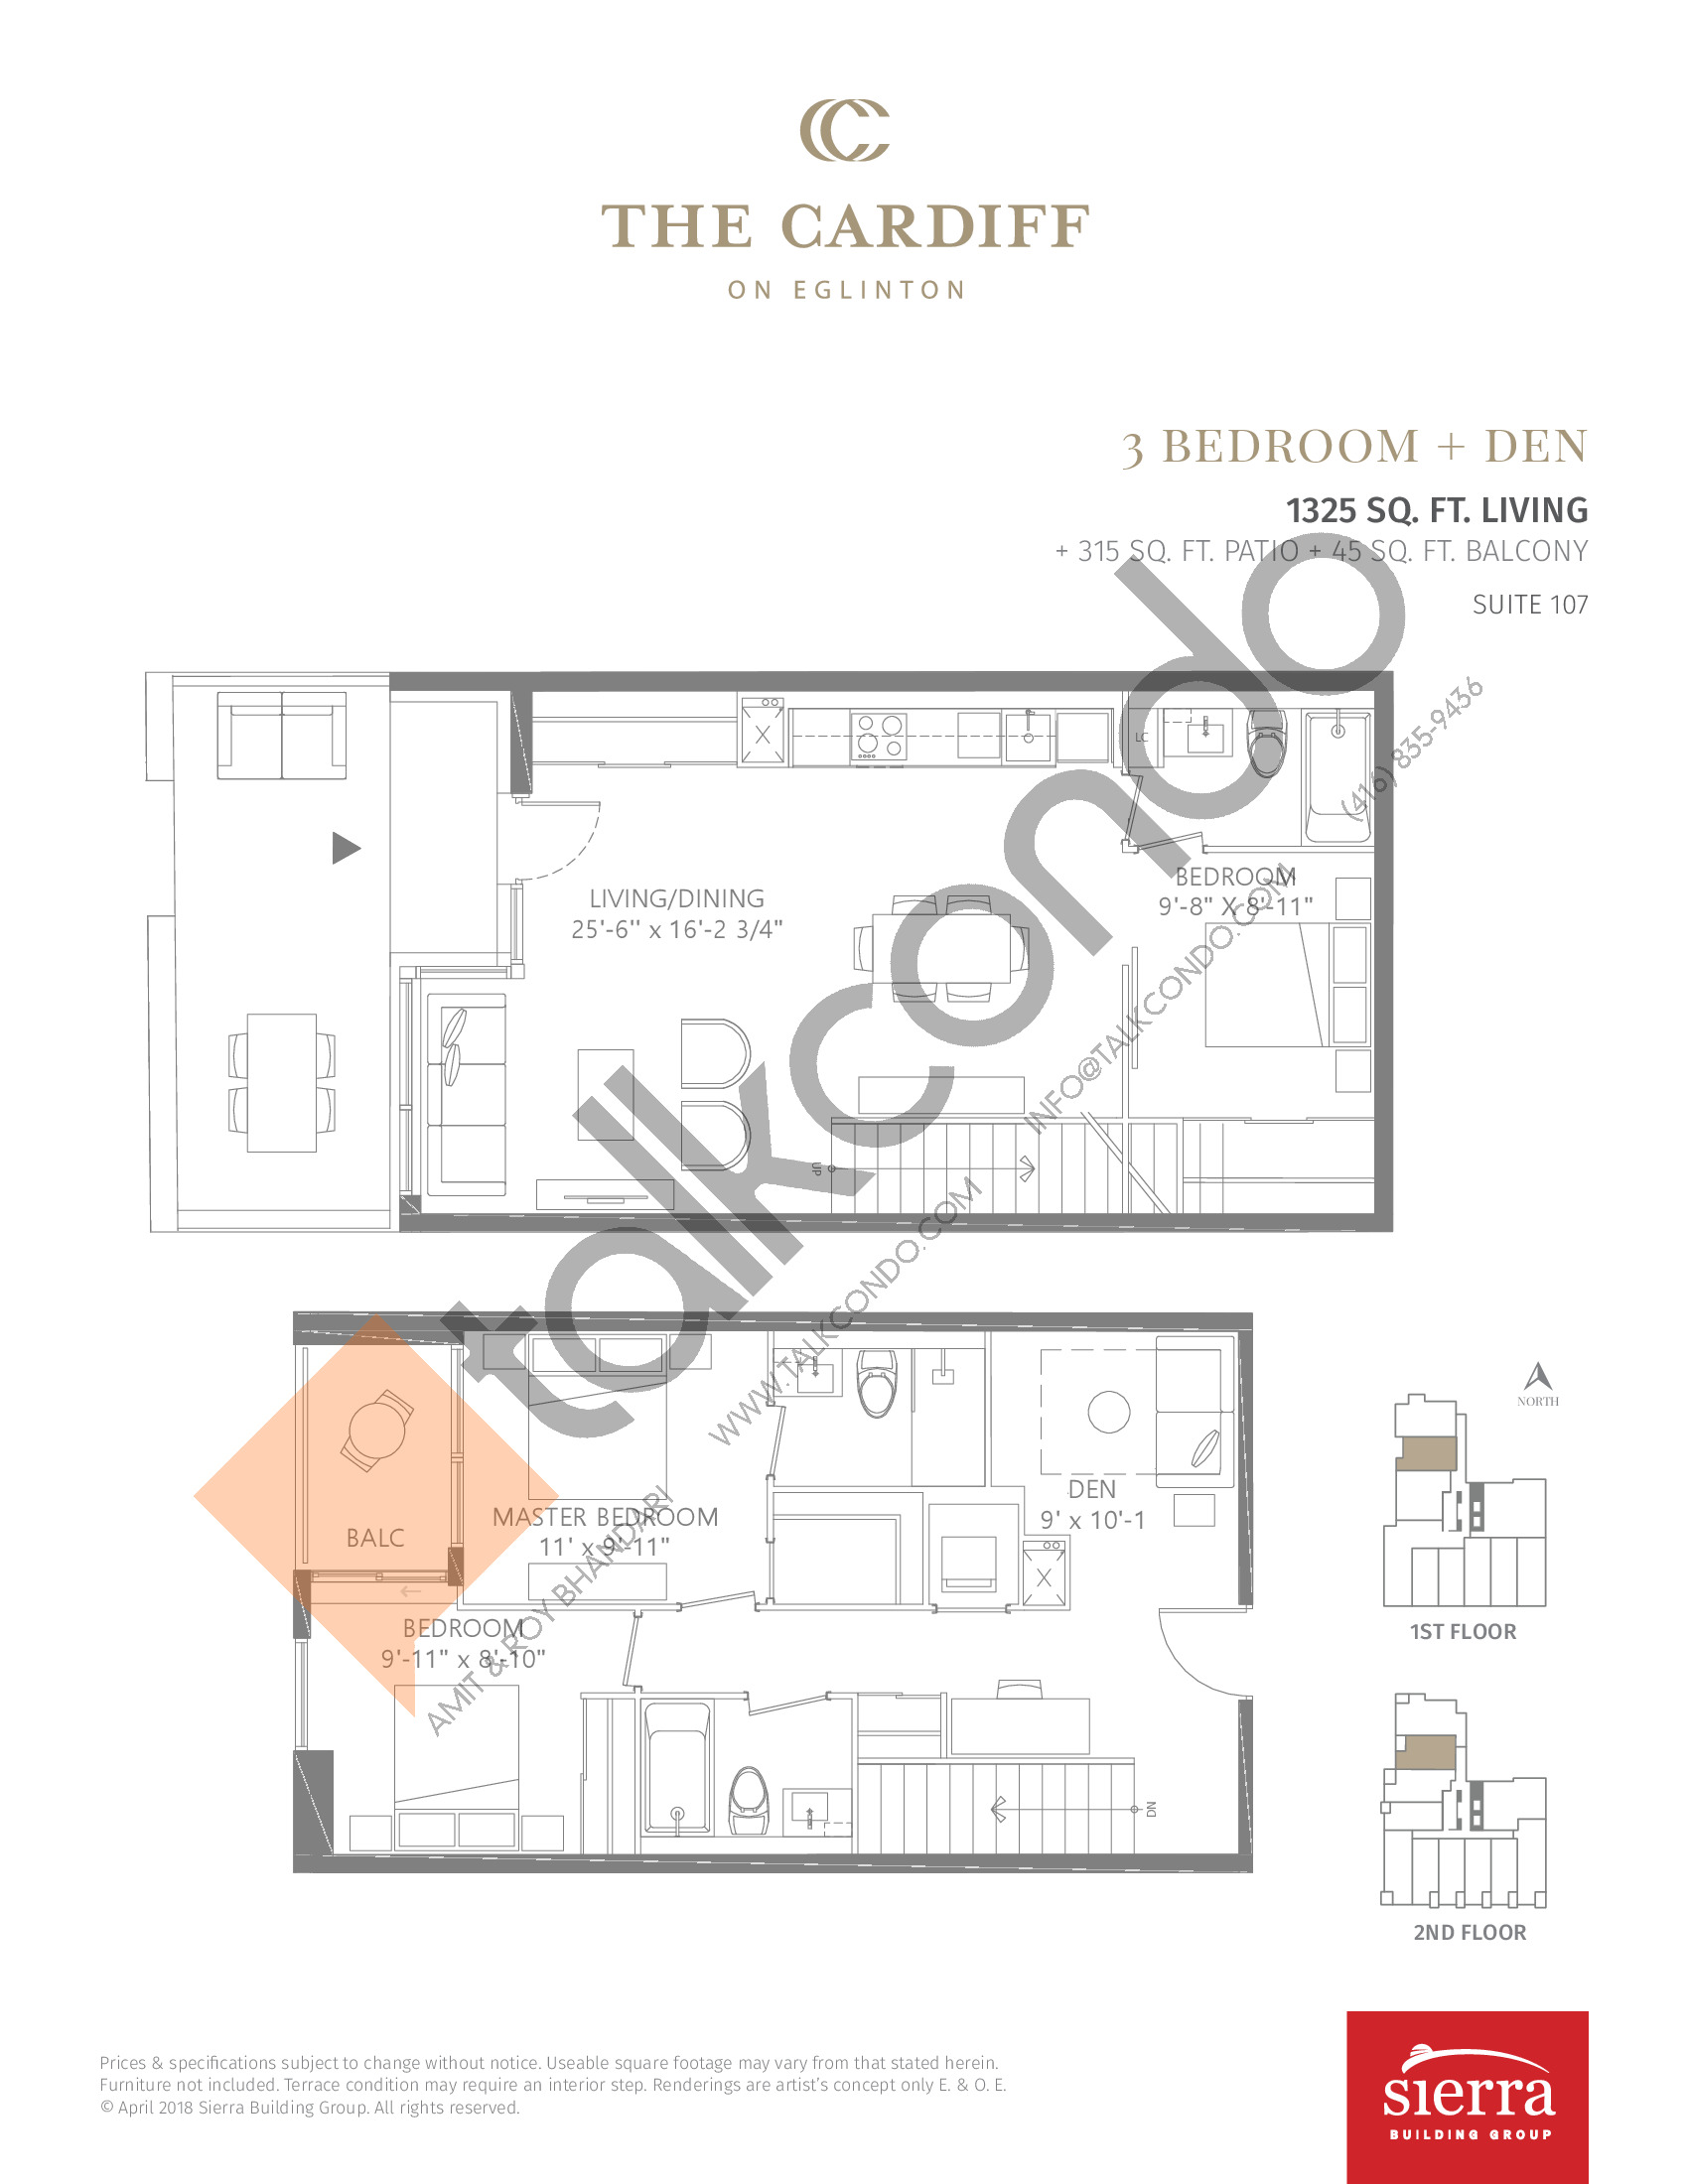 Suite 107 Floor Plan at The Cardiff Condos on Eglinton - 1325 sq.ft